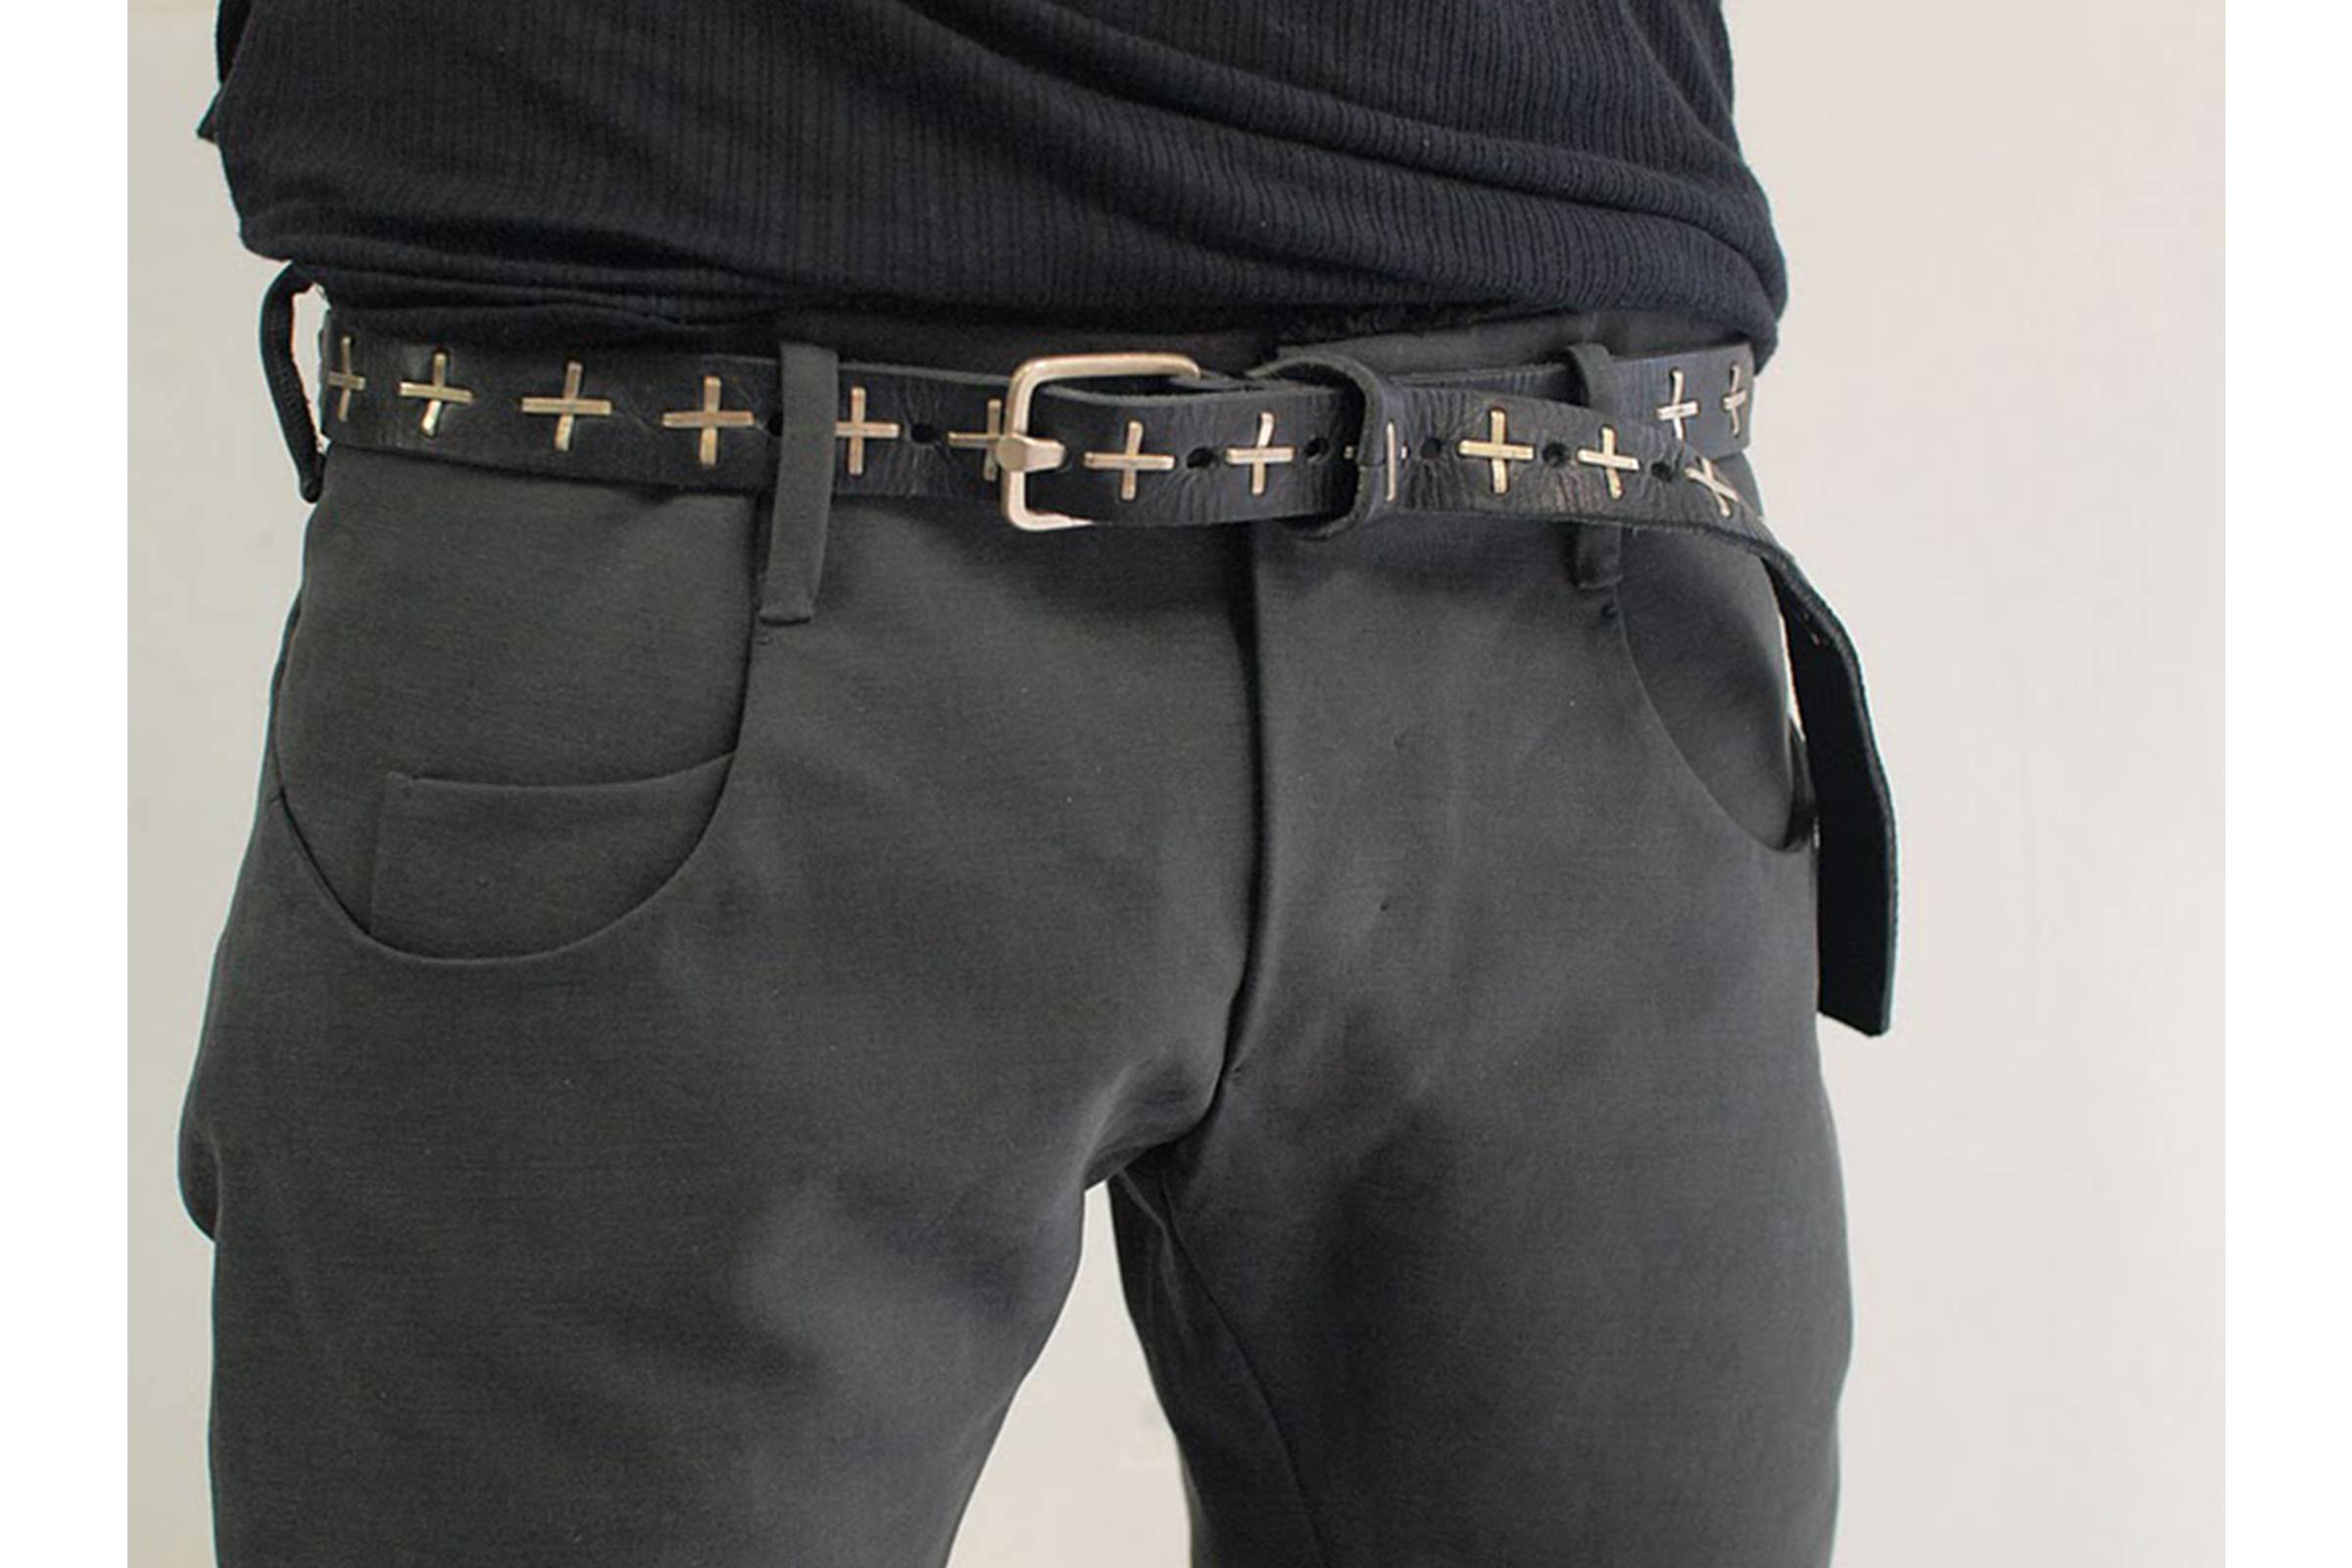 The Extra-Long Belt